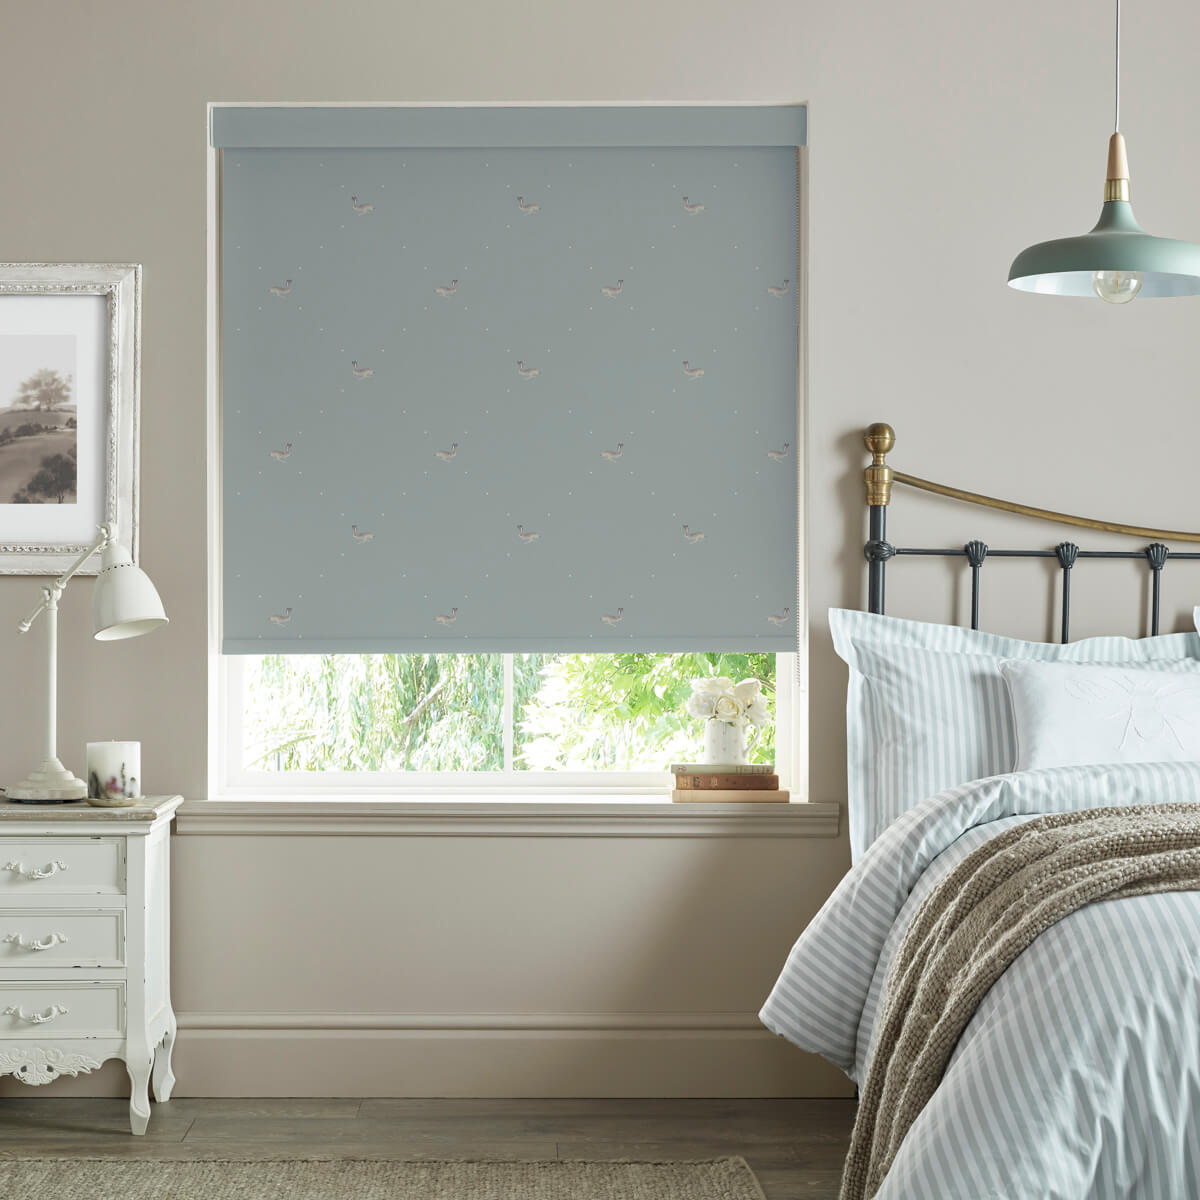 Learn How To Measure Blinds With Our Helpful Guide